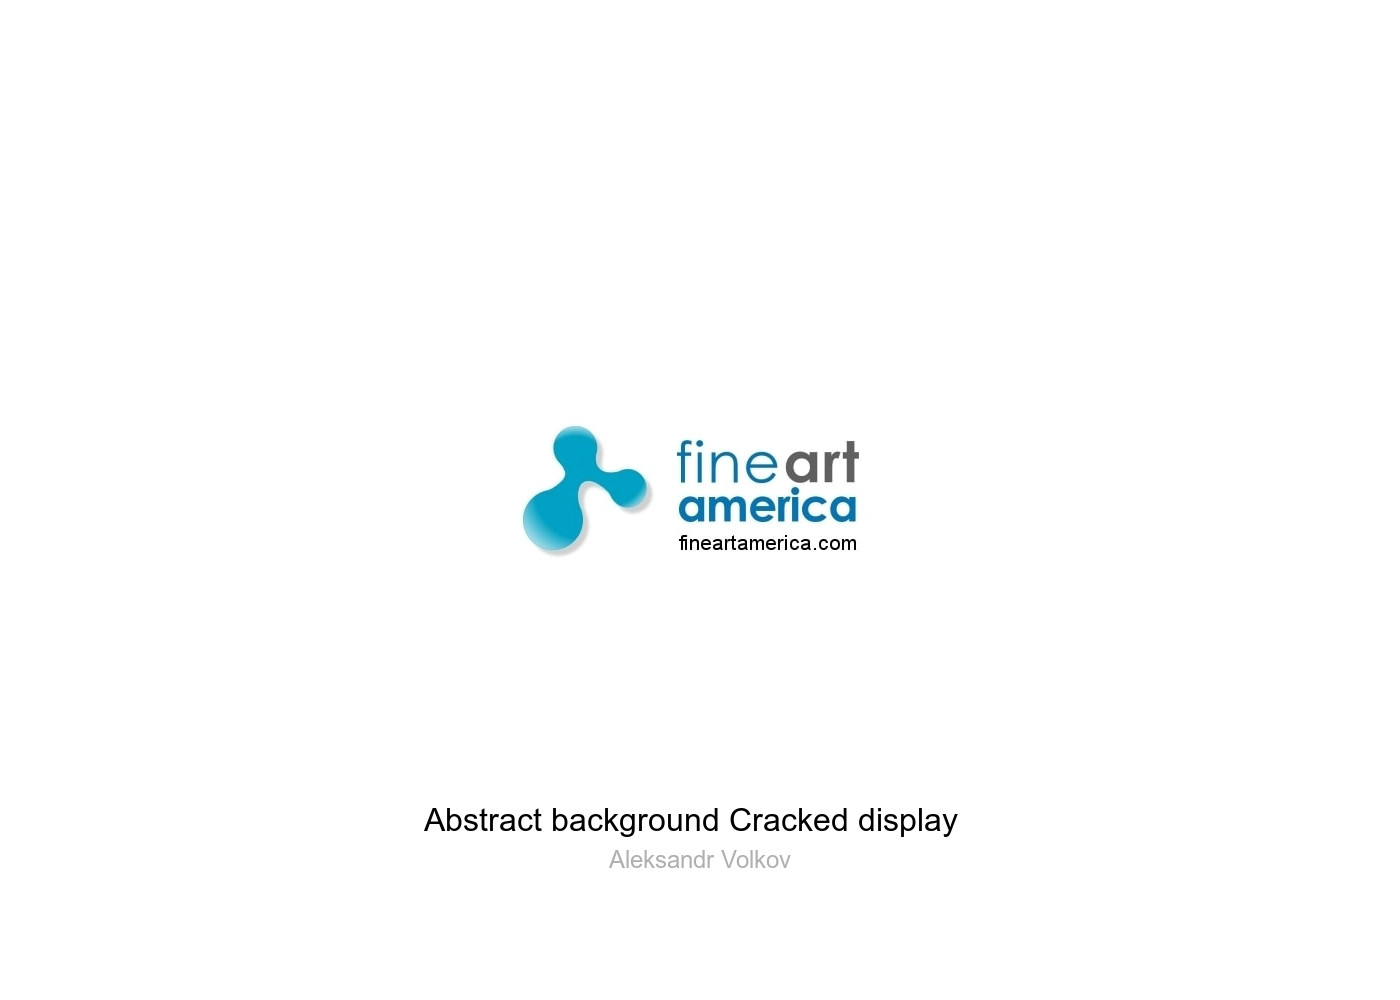 abstract background cracked display greeting card for sale